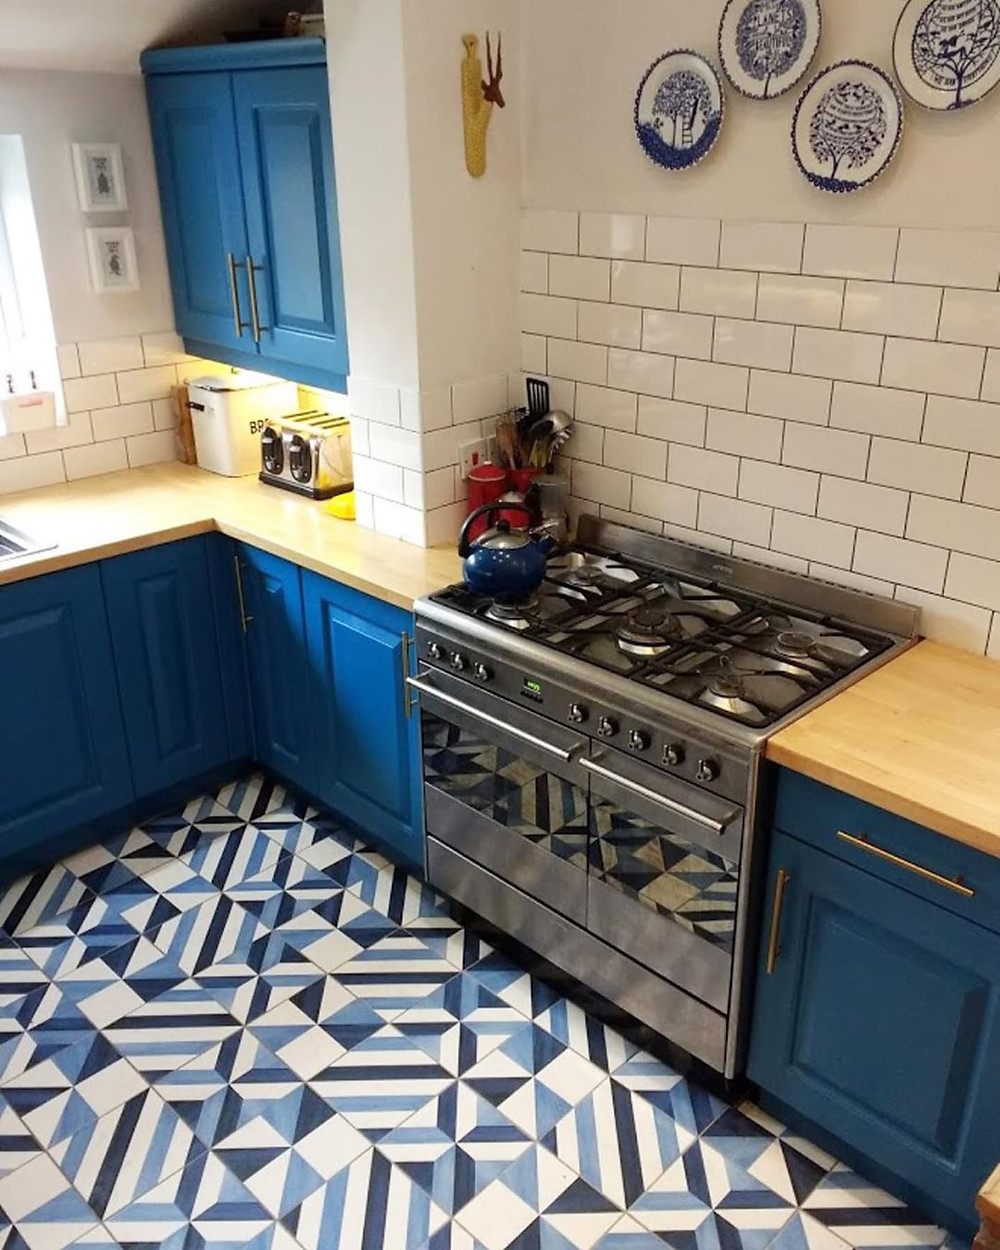 blue tile flooring with blue cabinets, wooden countertops and subway tiles in stunning kitchen design